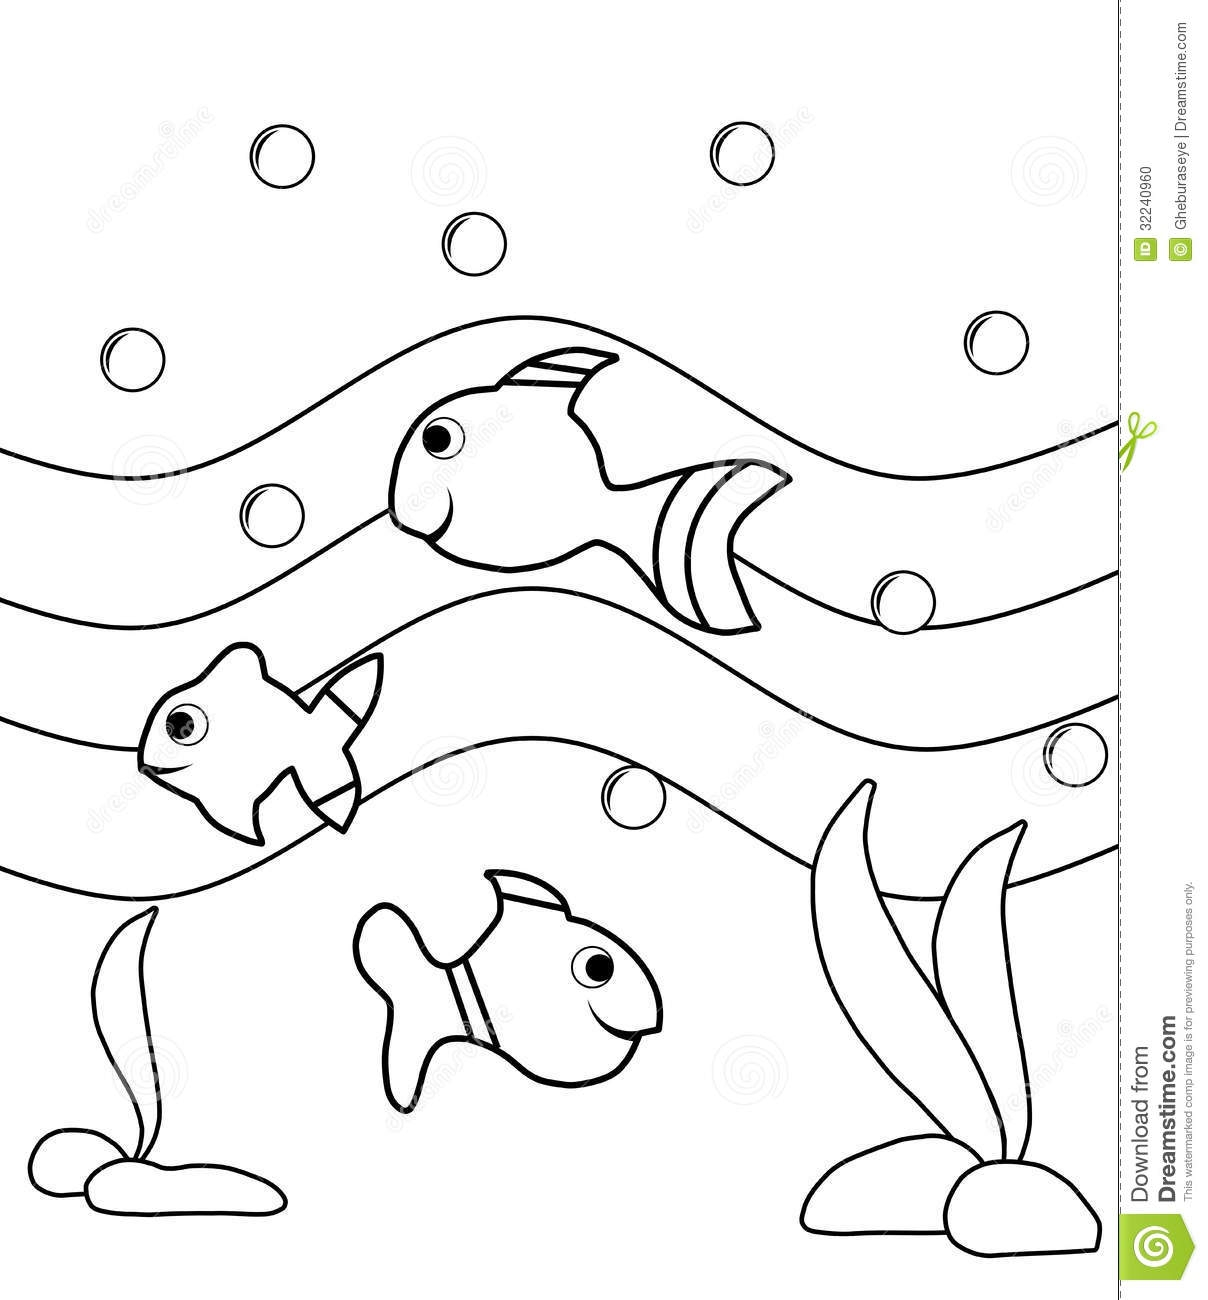 sea life coloring pages - stock photo colorable fishes image representing some nice cartoon version project thought to be colored children image